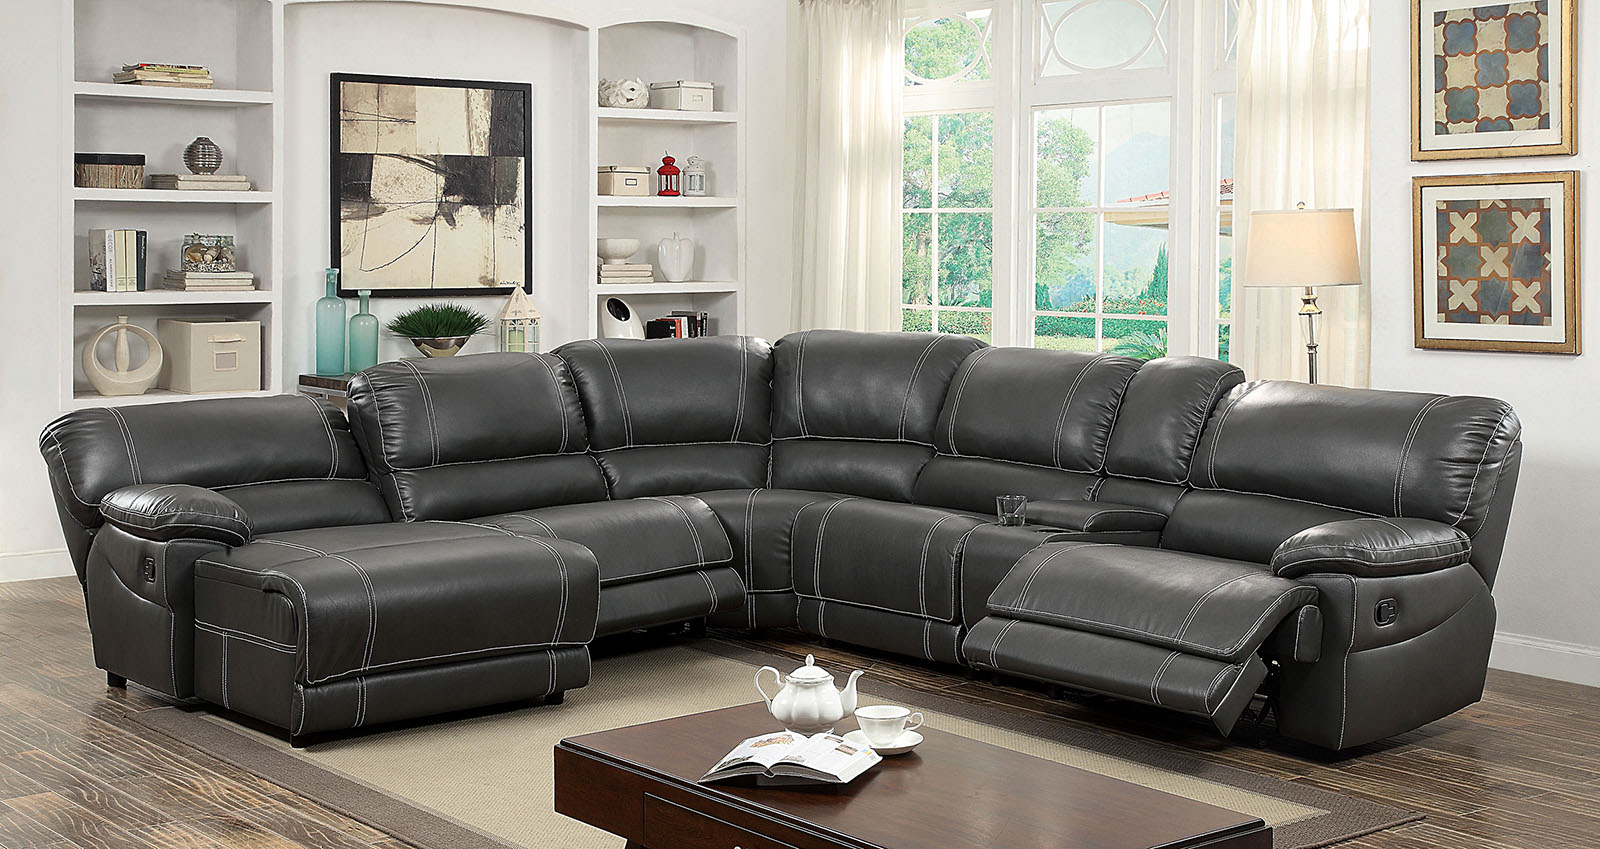 furniture of america 6131GY Gray Reclining chaise console sectional sofa furniture of america